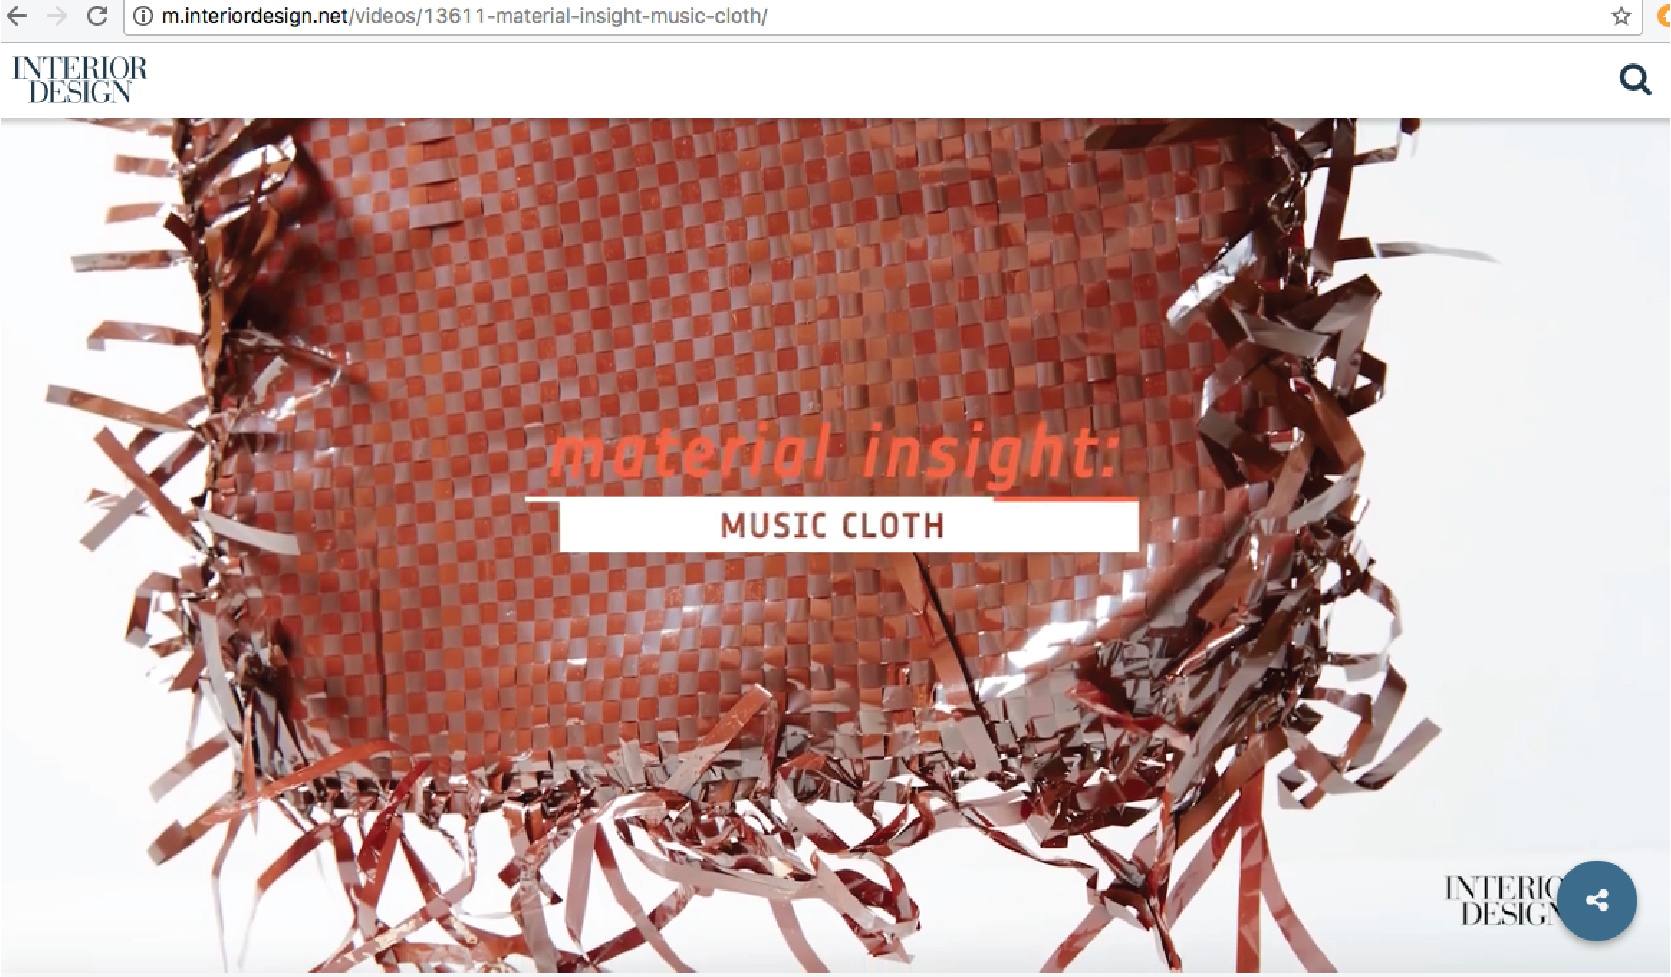 MusicCloth products